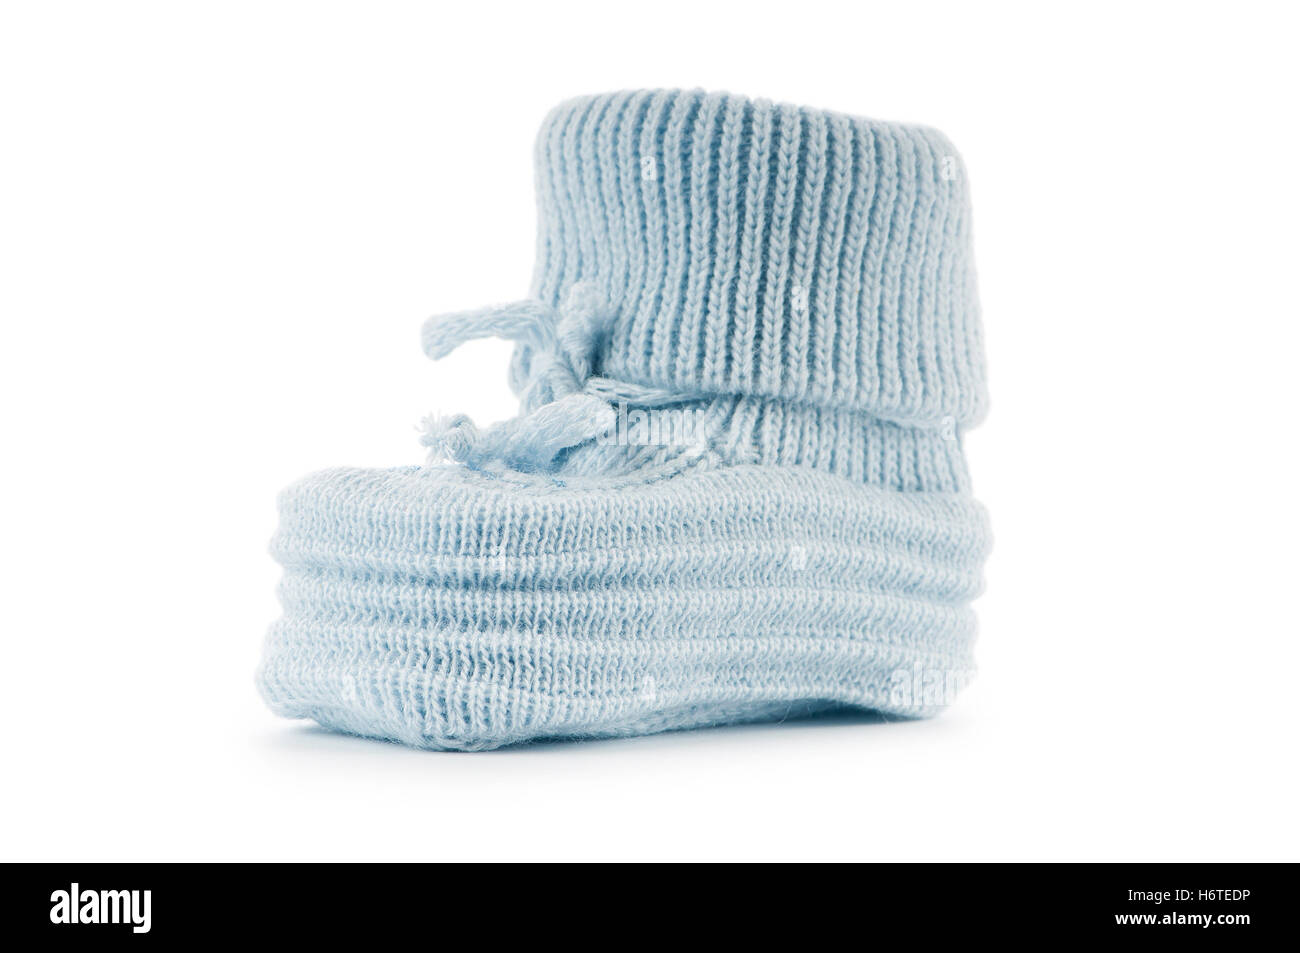 boot blue sport sports isolated fashion born colour new shoes small tiny little short baby foot feet gift gear clothes - Stock Image